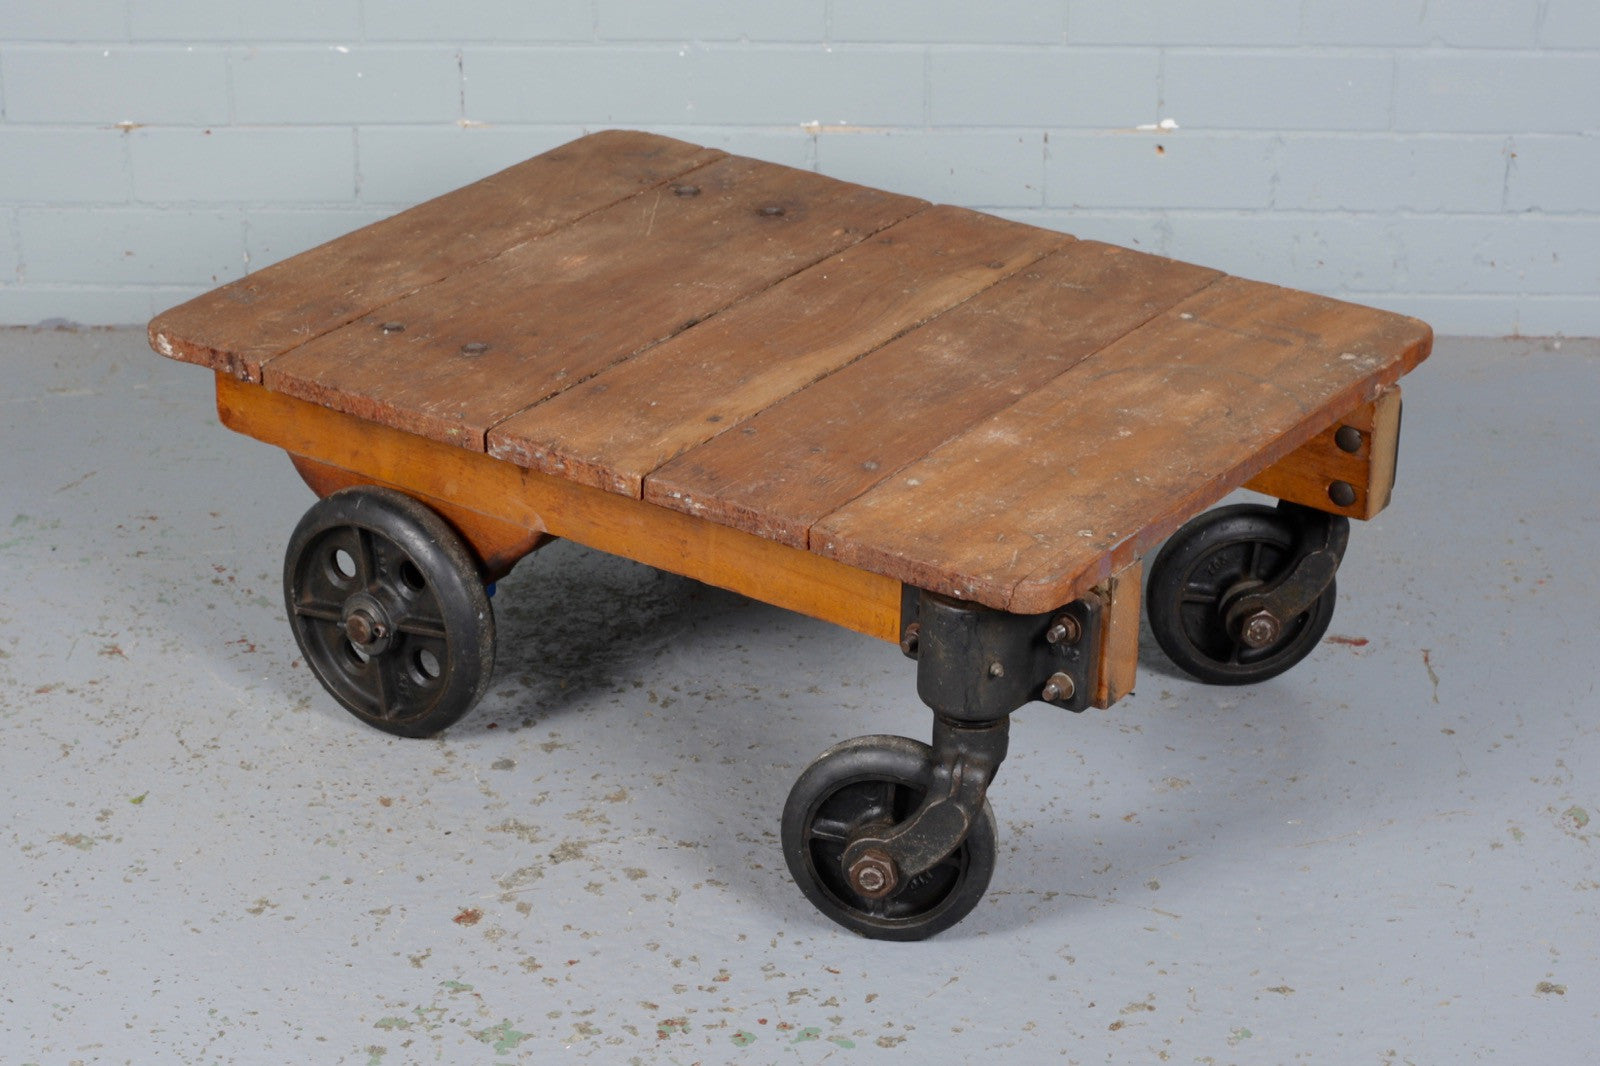 Industrial wooden trolley for sale at Industrious Interiors, an online vintage furniture and homeware store based in Nottingham, England.